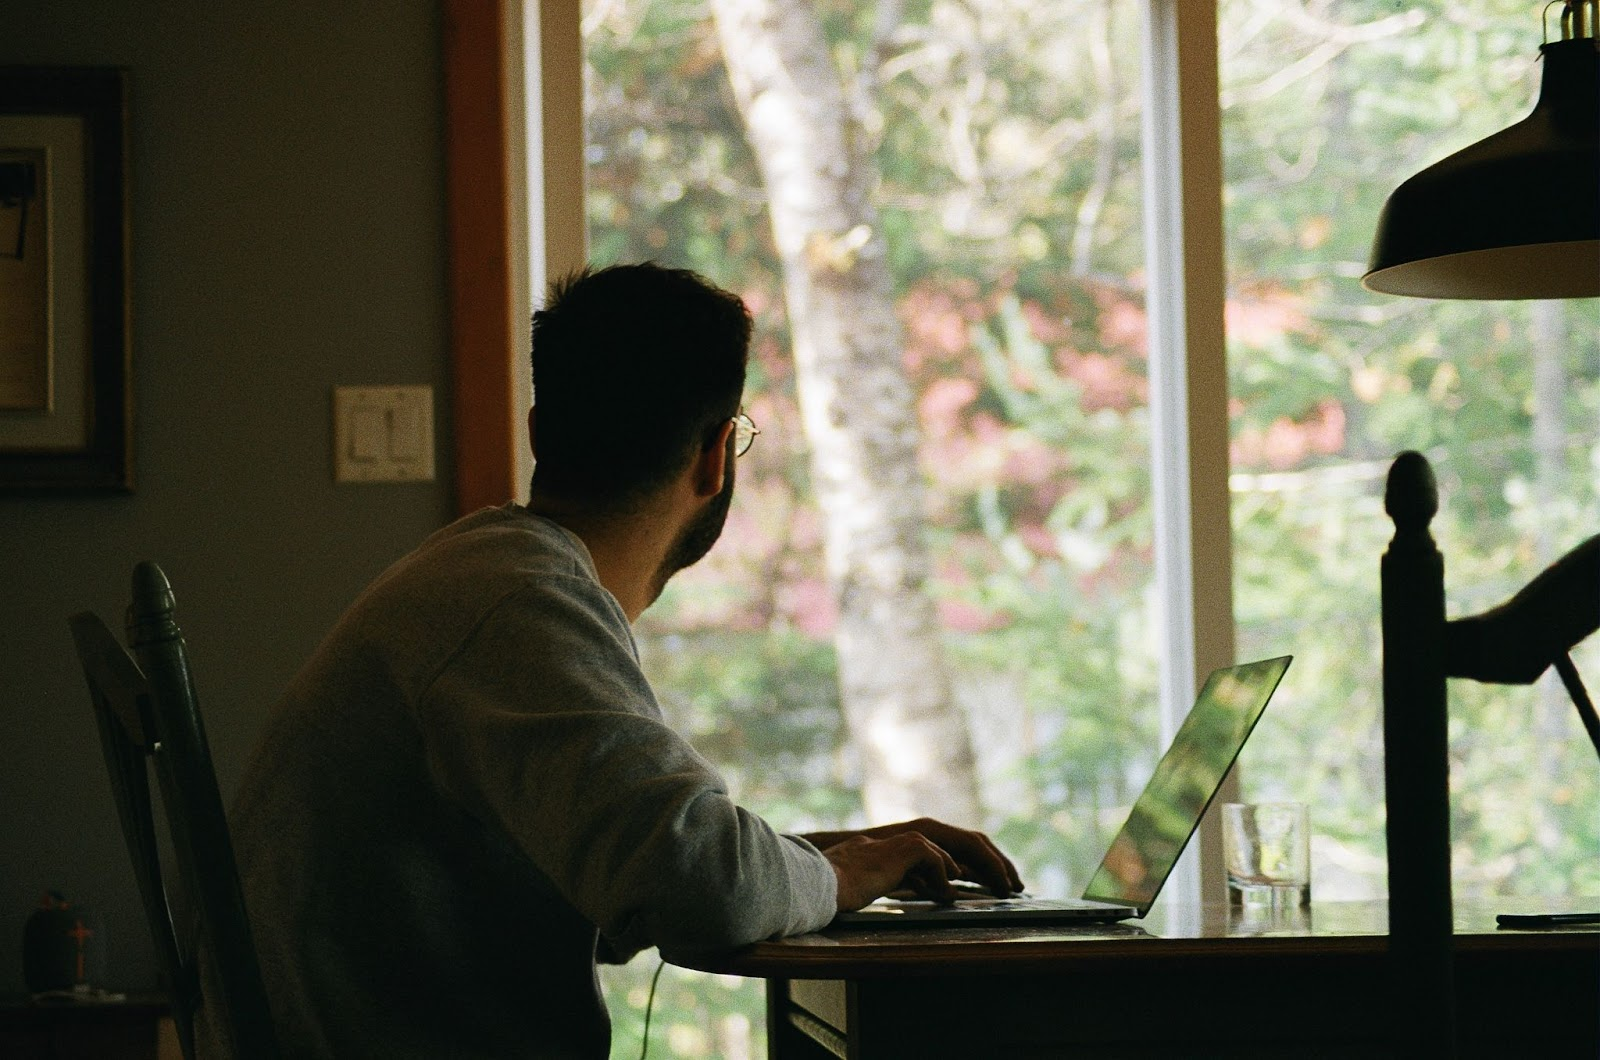 Man working at computer and looking out window.